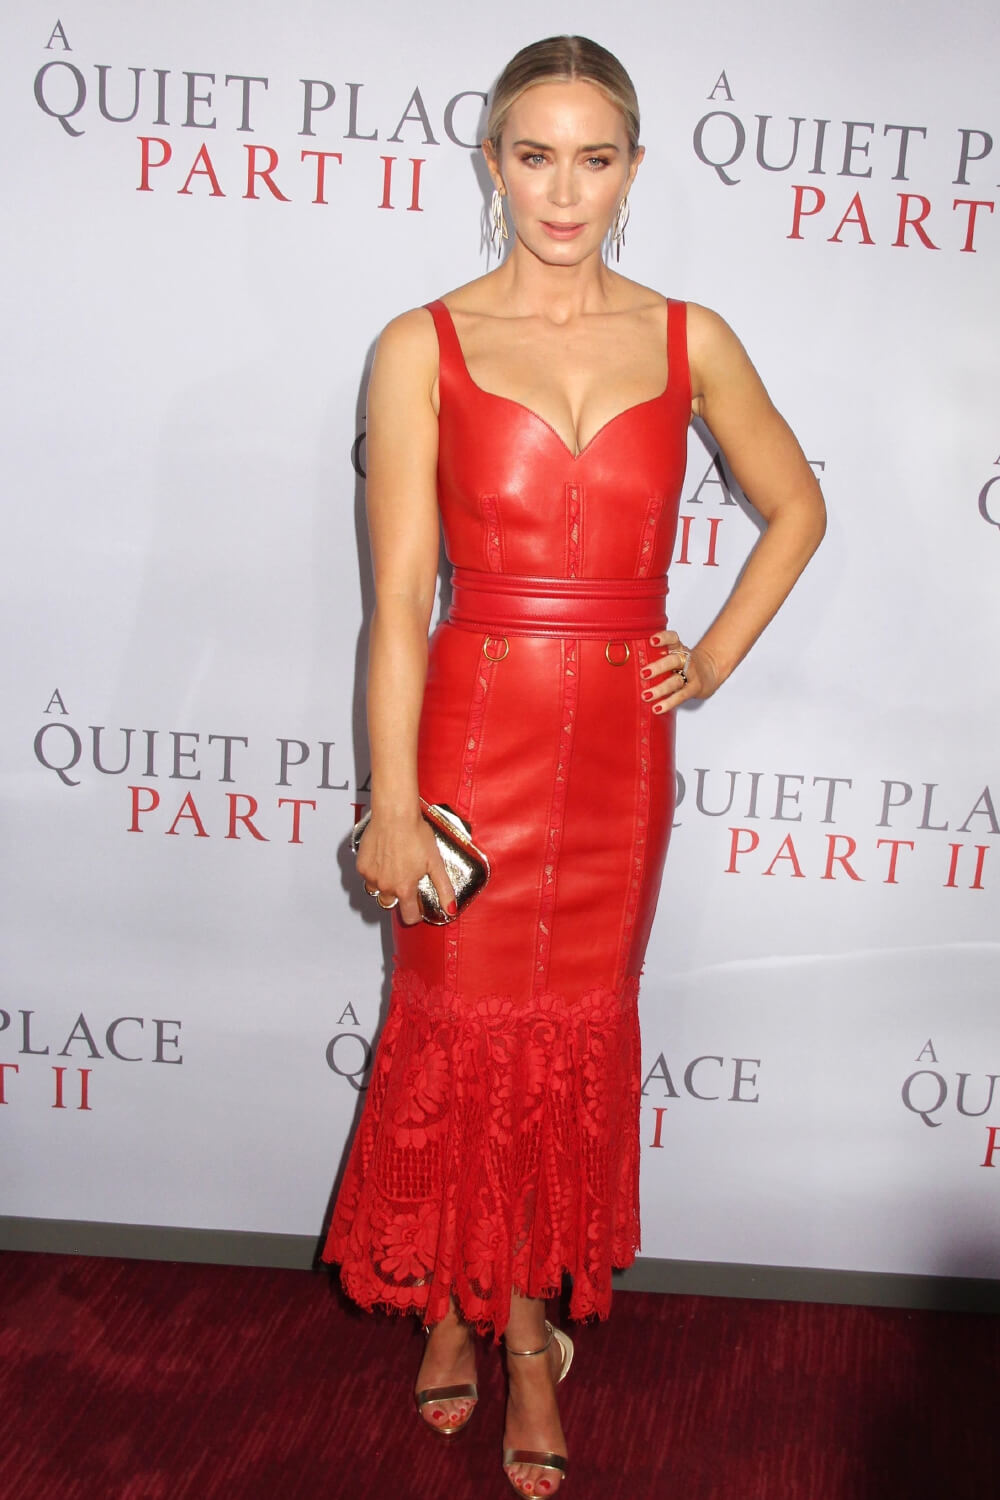 Emily Blunt at A Quiet Place Part II World Premiere